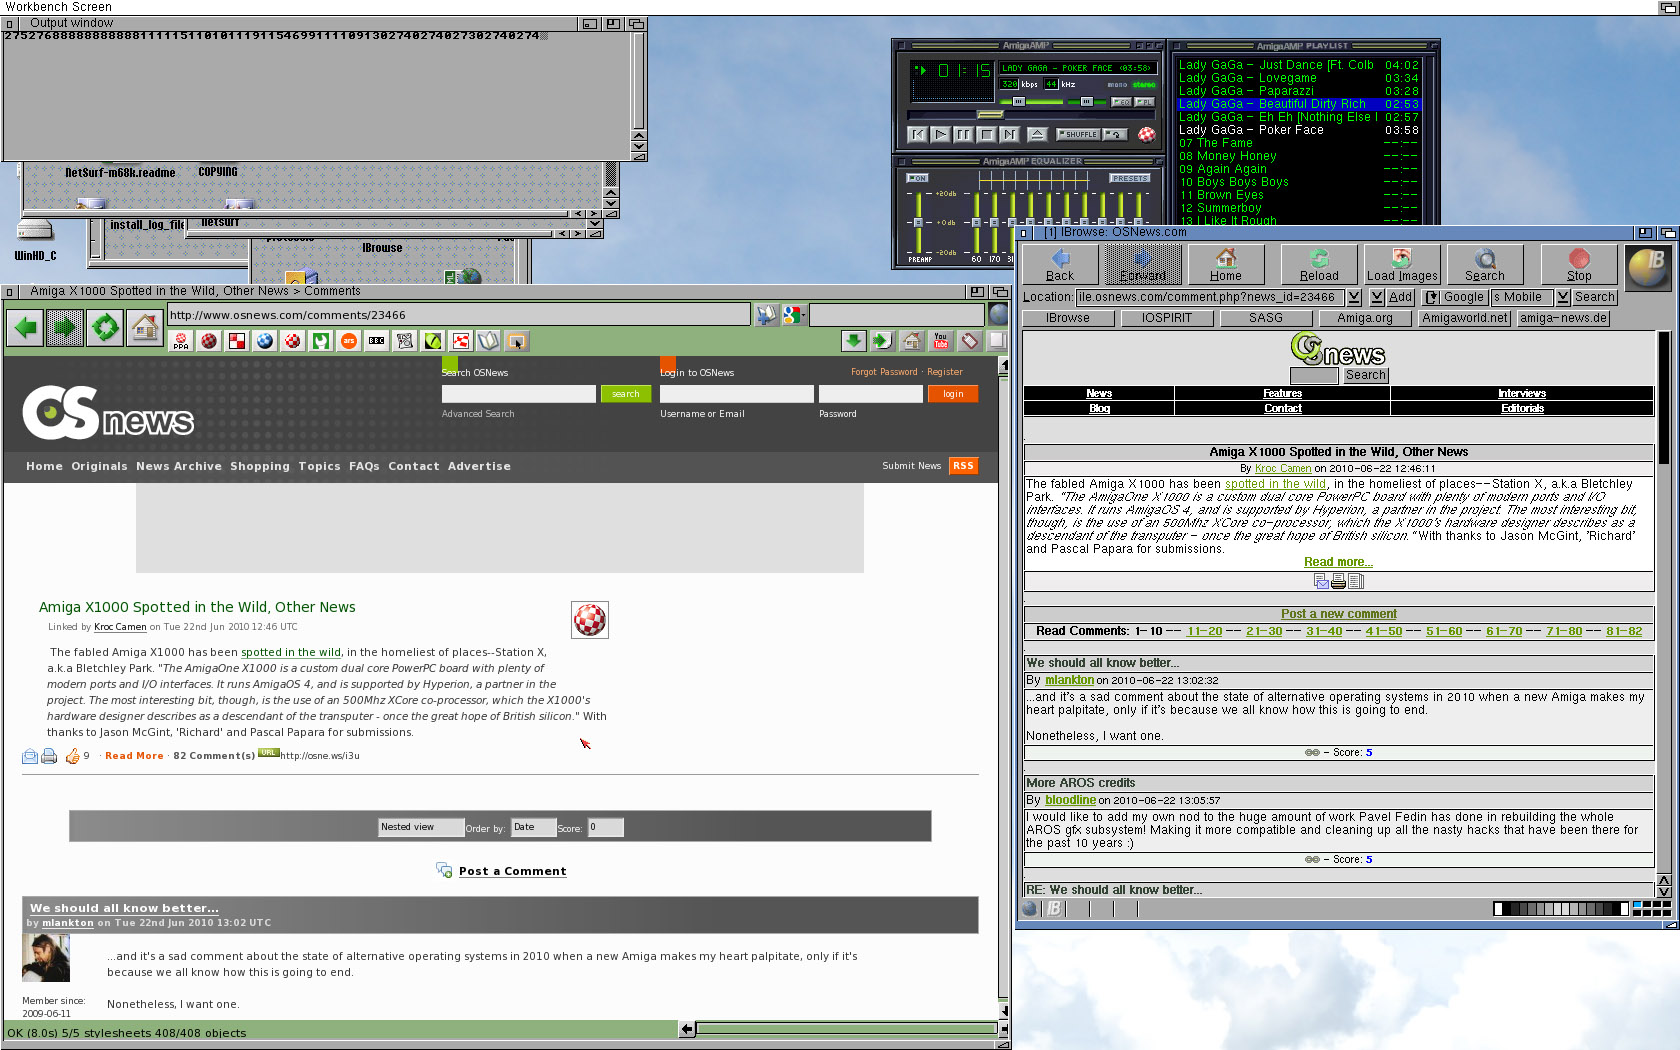 NetSurf 68K and IBrowse 2.4 showing the same page